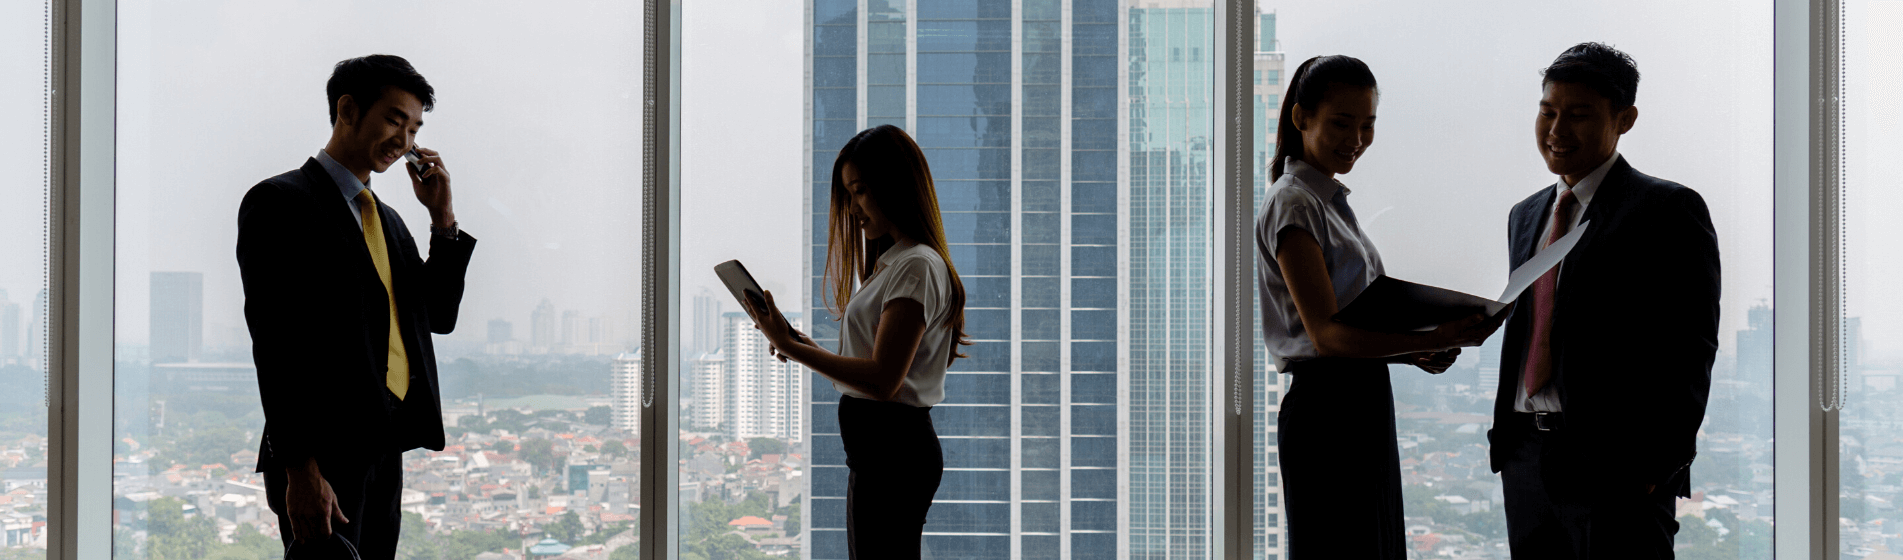 Doing Business in Asia: How to Save Face